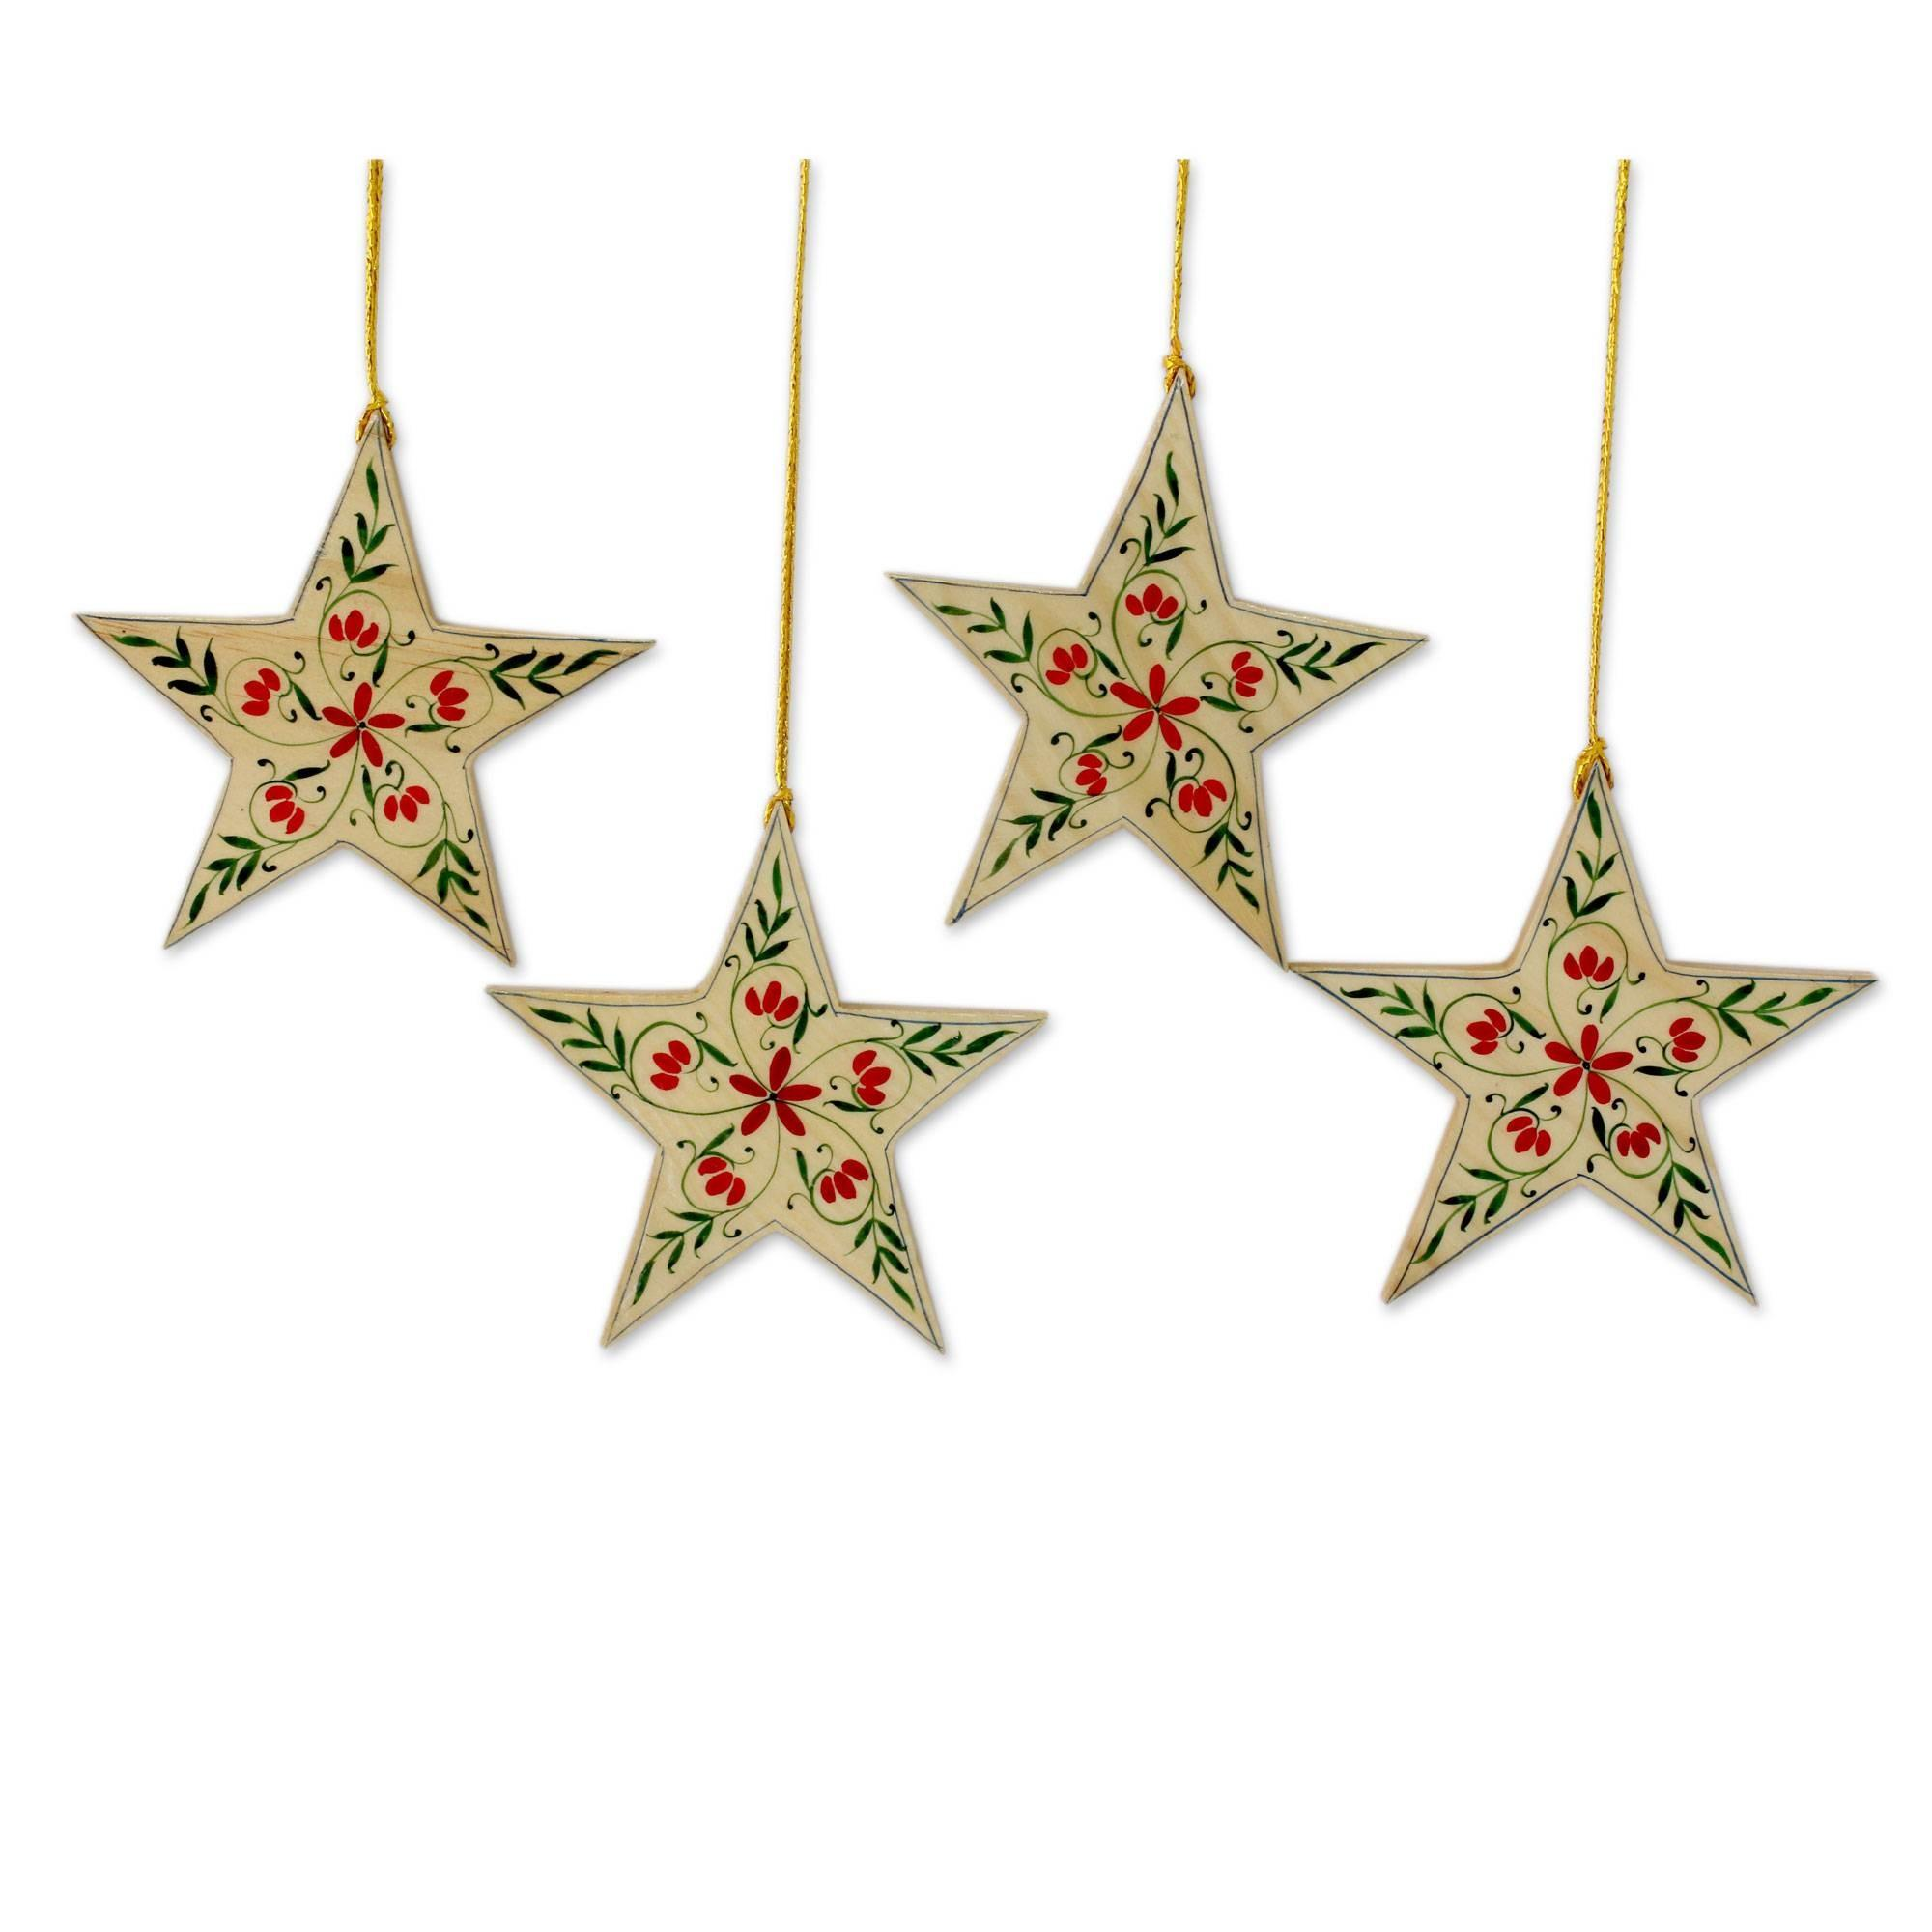 Unicef Market Handcrafted Christmas Star Ornaments